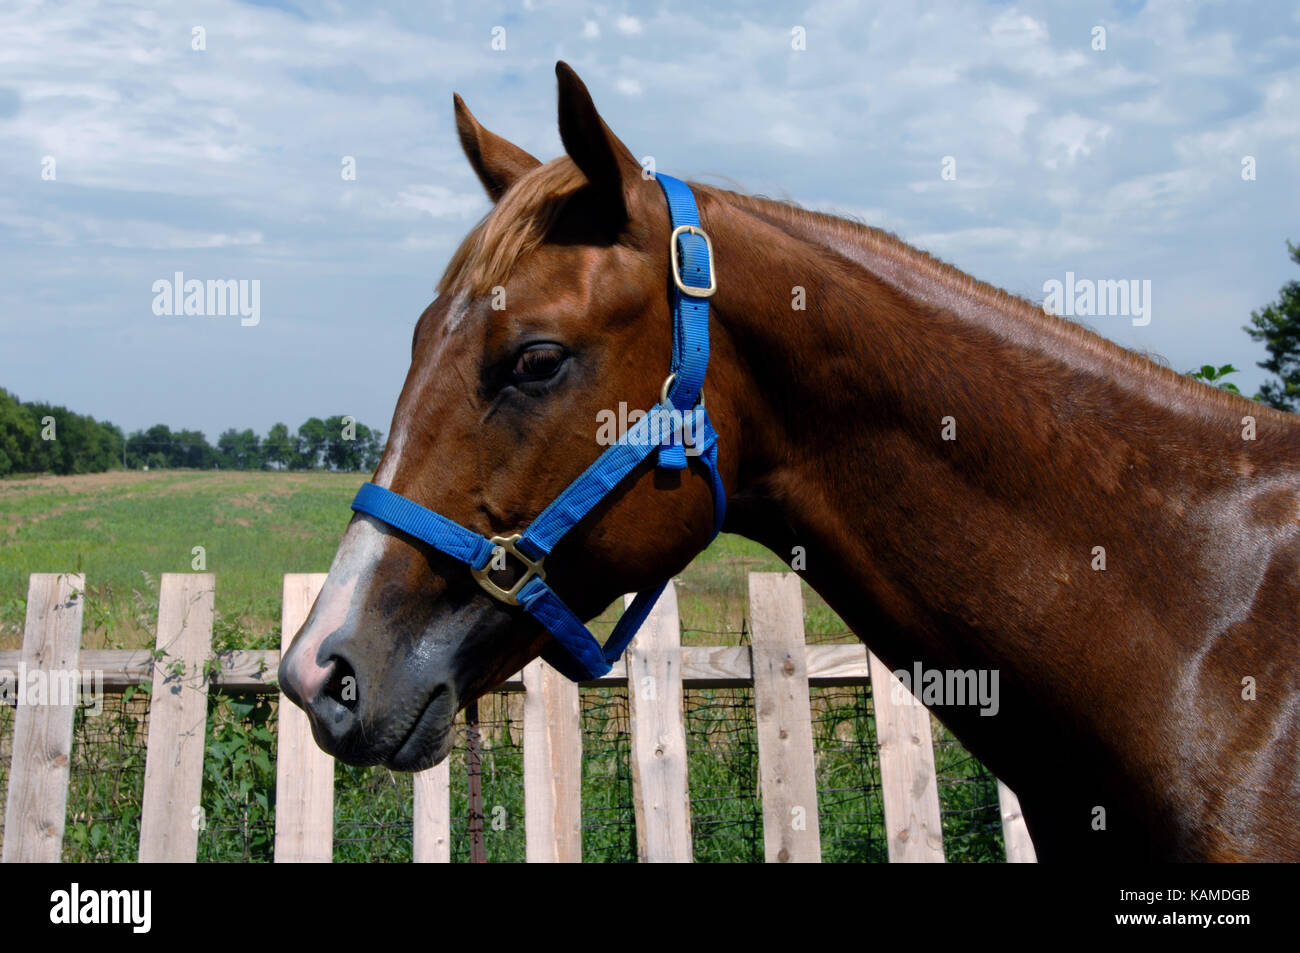 Gelding, sorrel quarter horse stands in profile besides a wooden picket fence.  He is wet with sweat from work out. - Stock Image